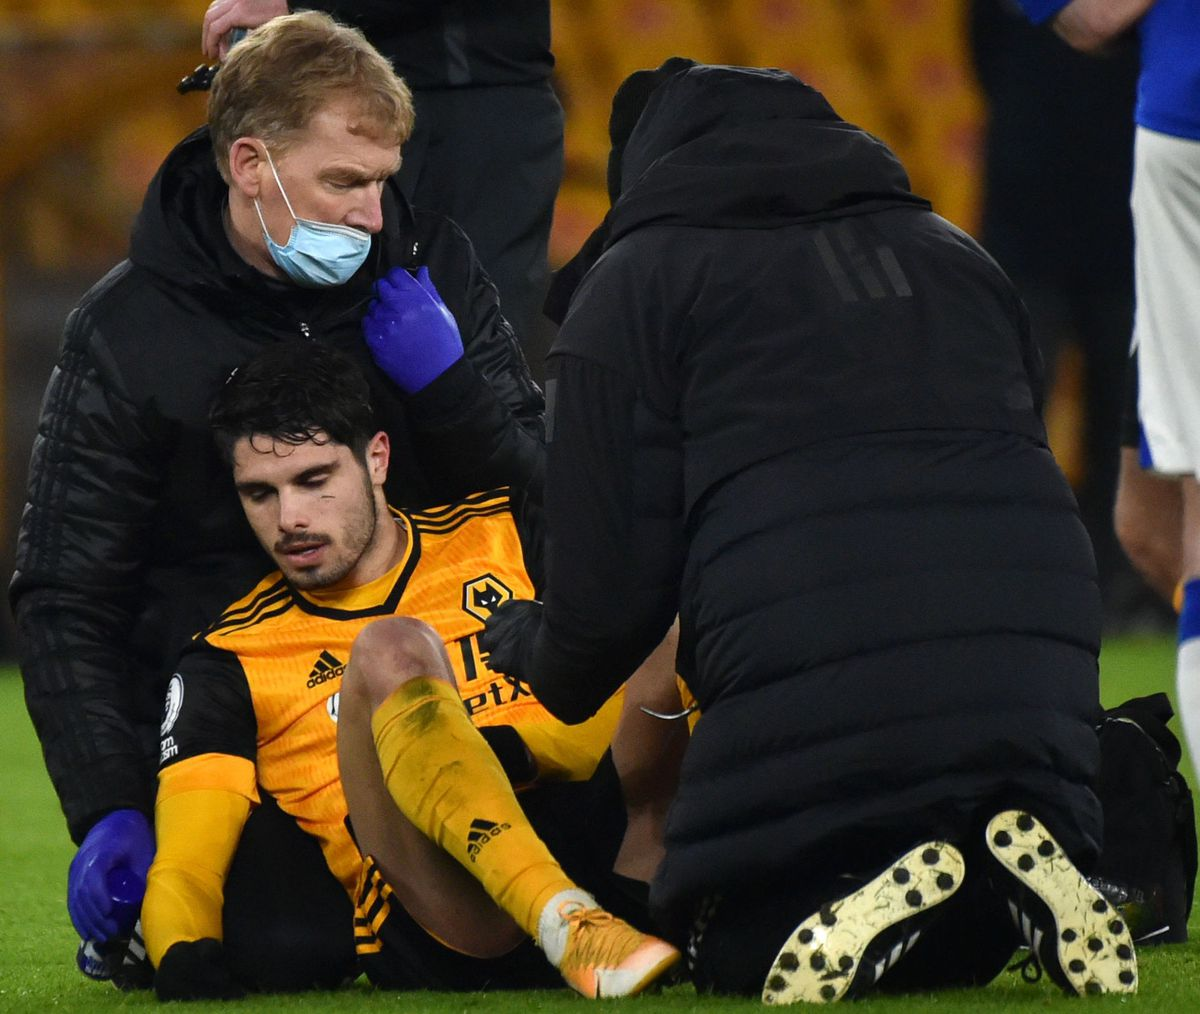 Pedro Neto receives medical treatment during Wolves' defeat to Everton